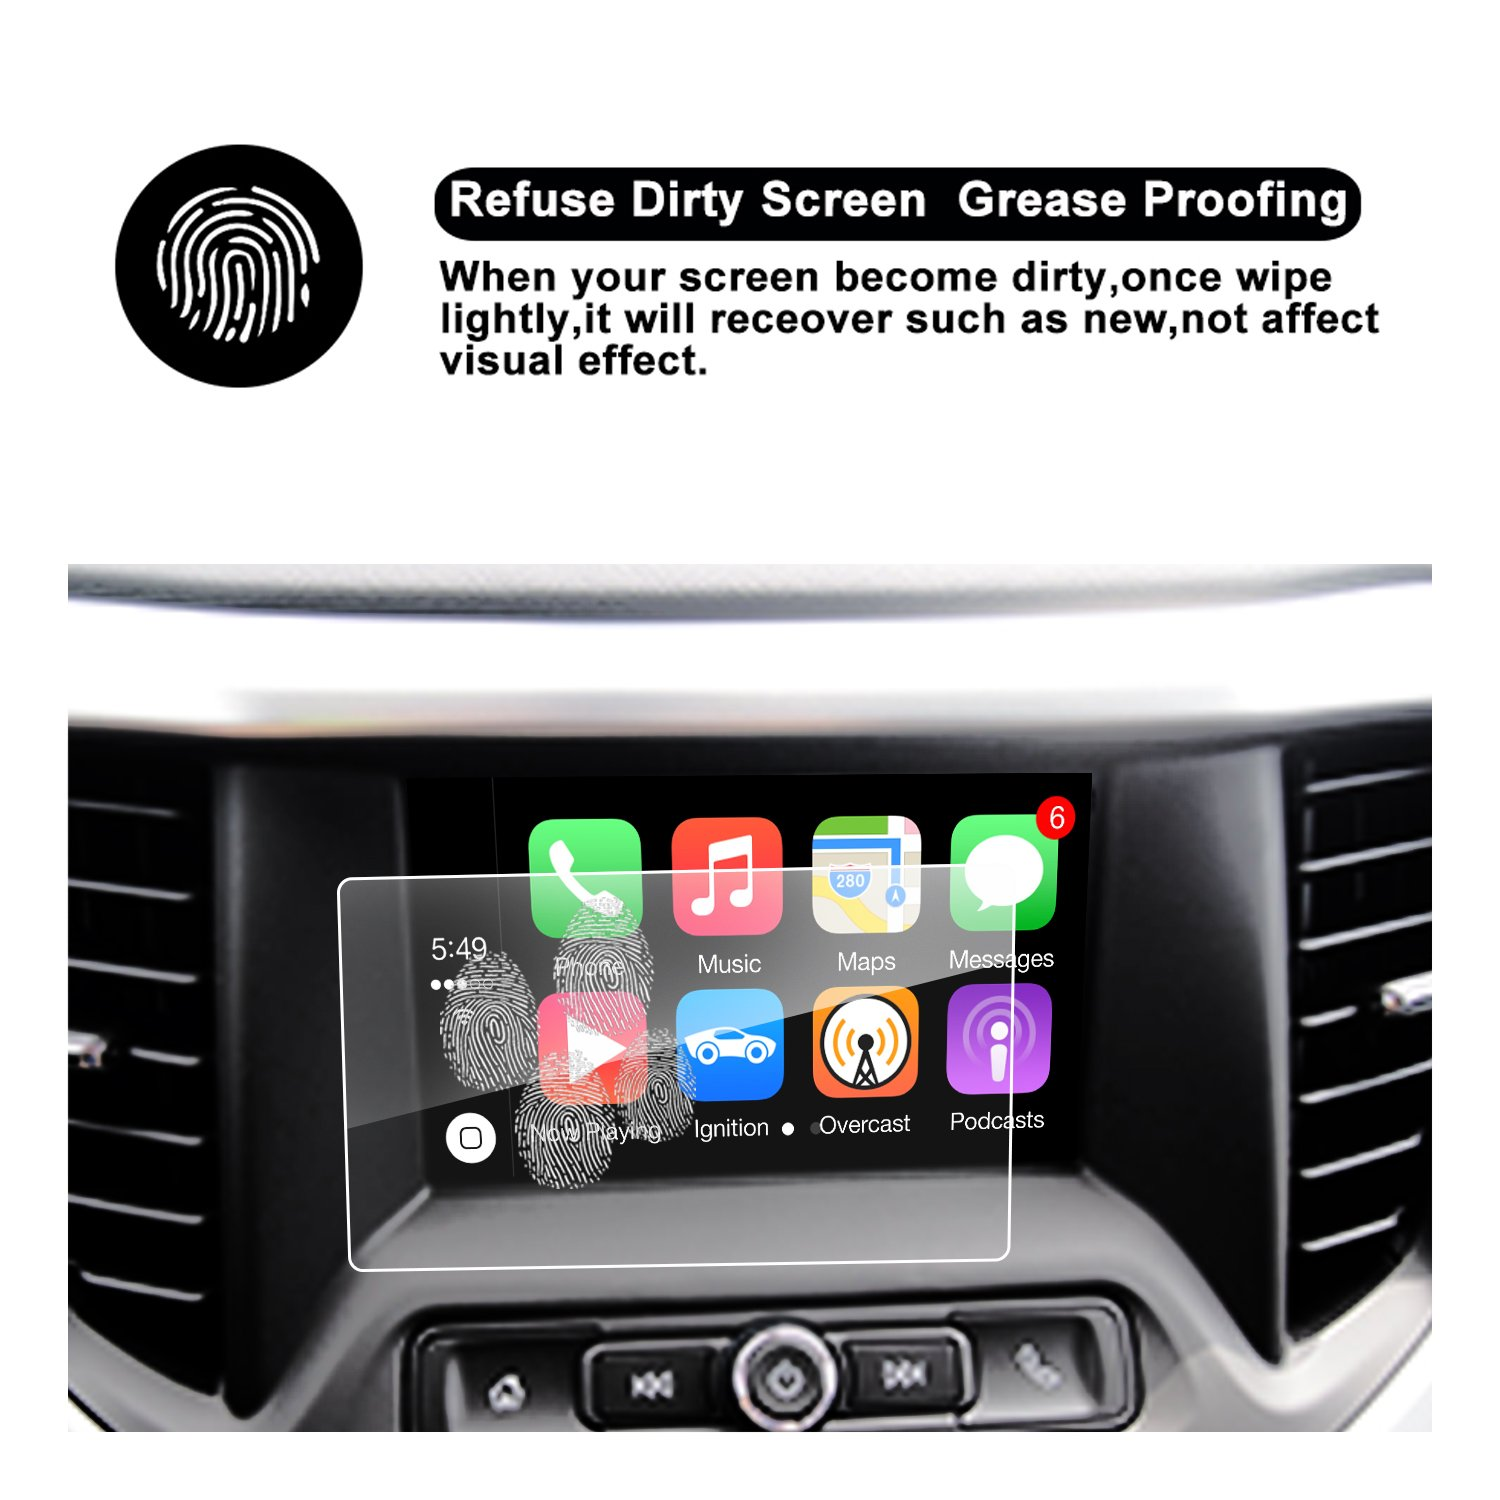 8-Inch 2017 2018 GMC Acadia Display Navigation Screen Protector R RUIYA HD Clear Tempered Glass Screen Guard Shield Scratch-Resistant Ultra HD Extreme Clarity